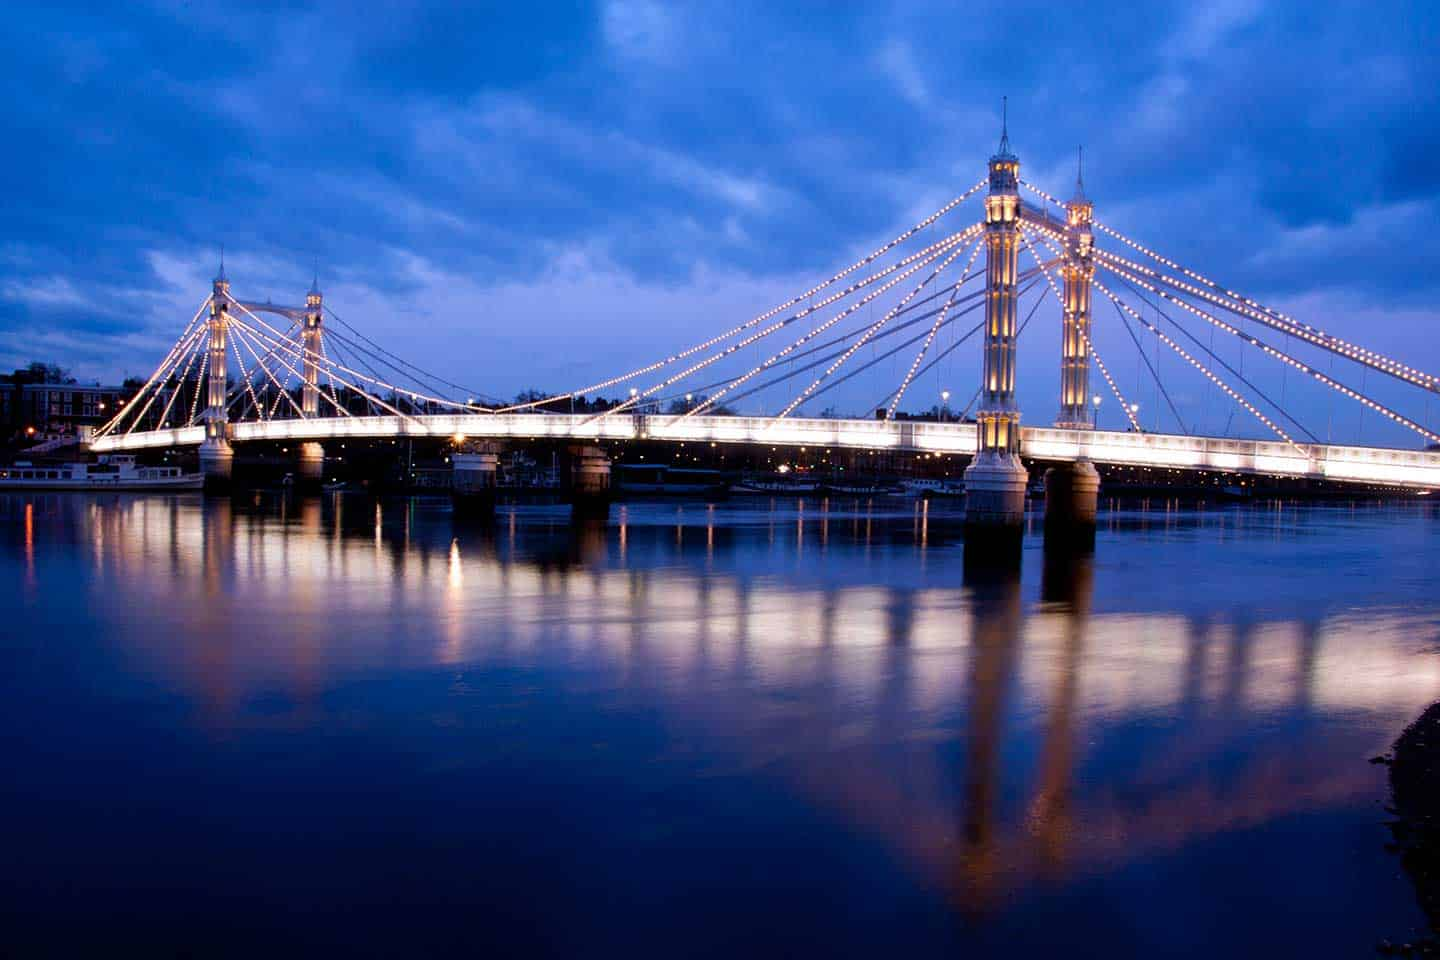 Image of the Albert Bridge London at night